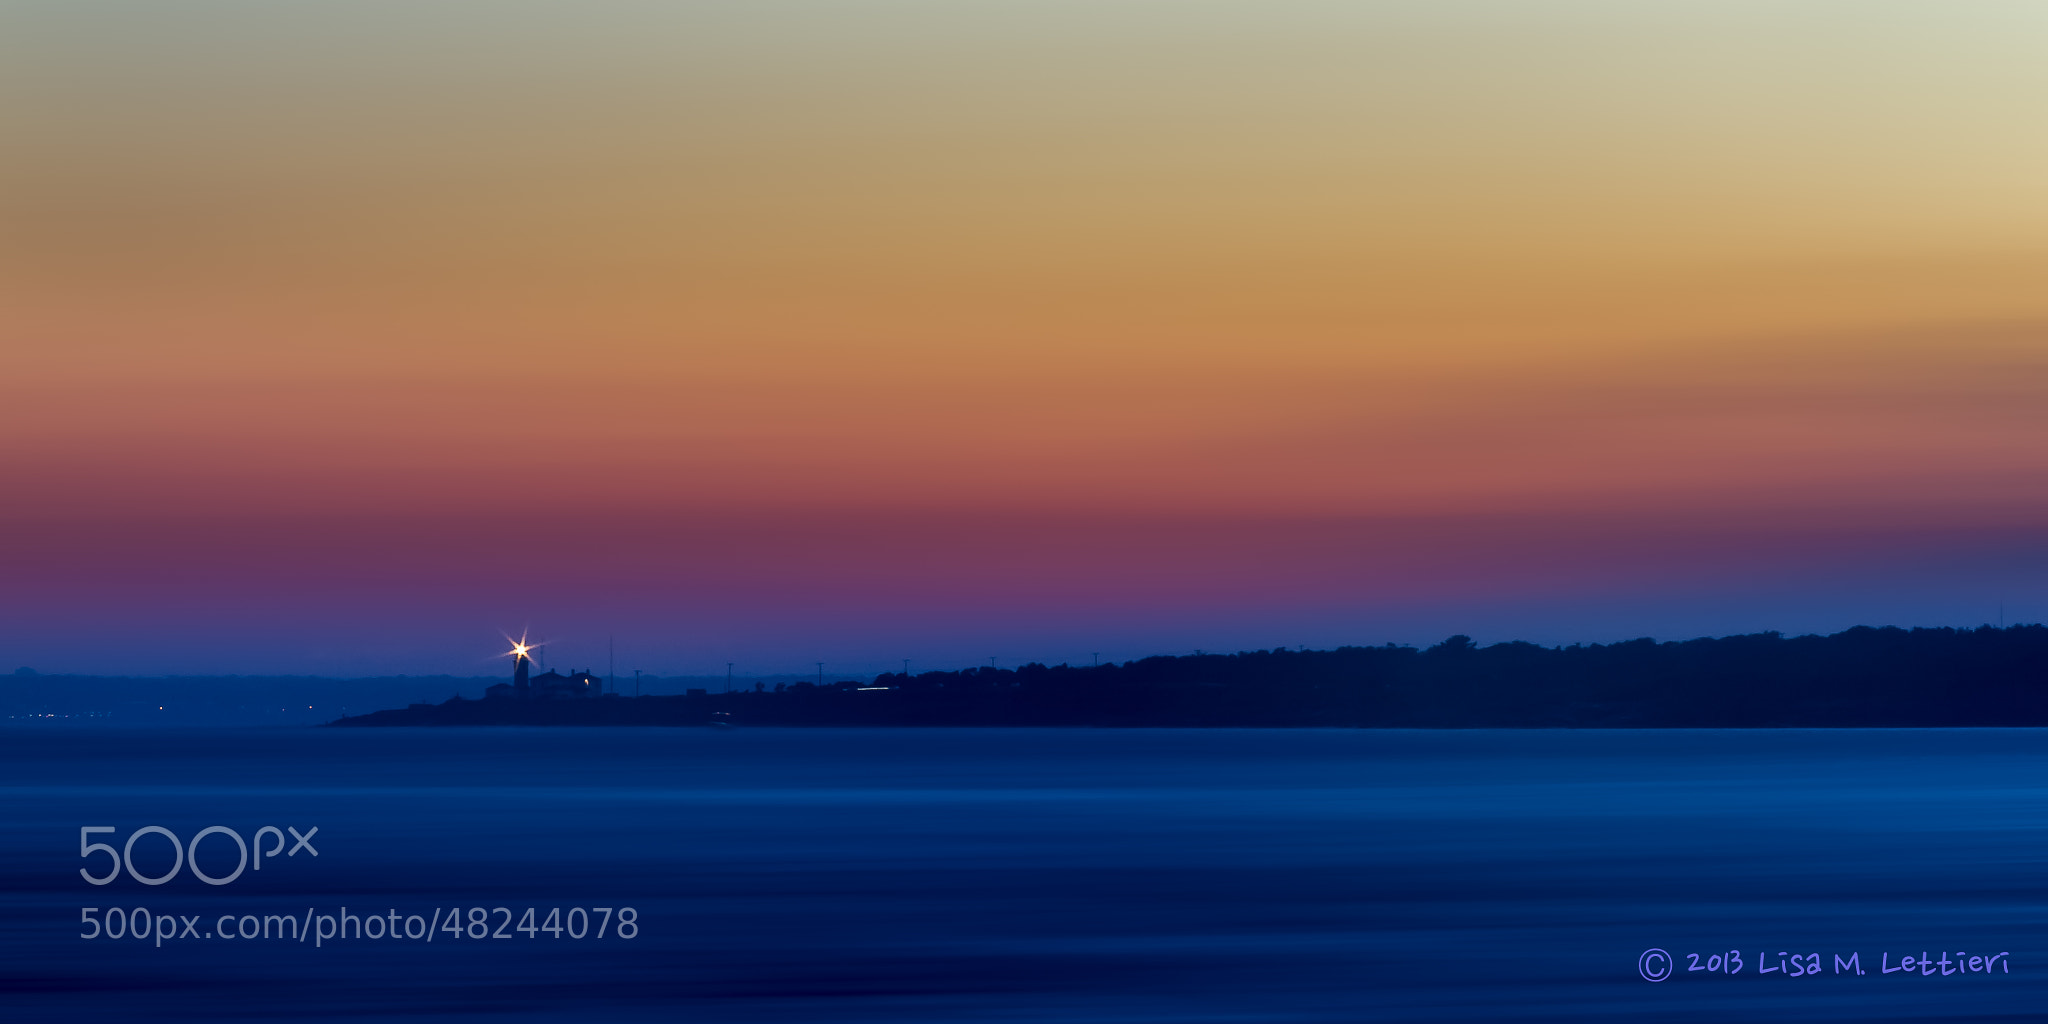 Photograph Beavertail Light at Work by Lisa Lettieri on 500px